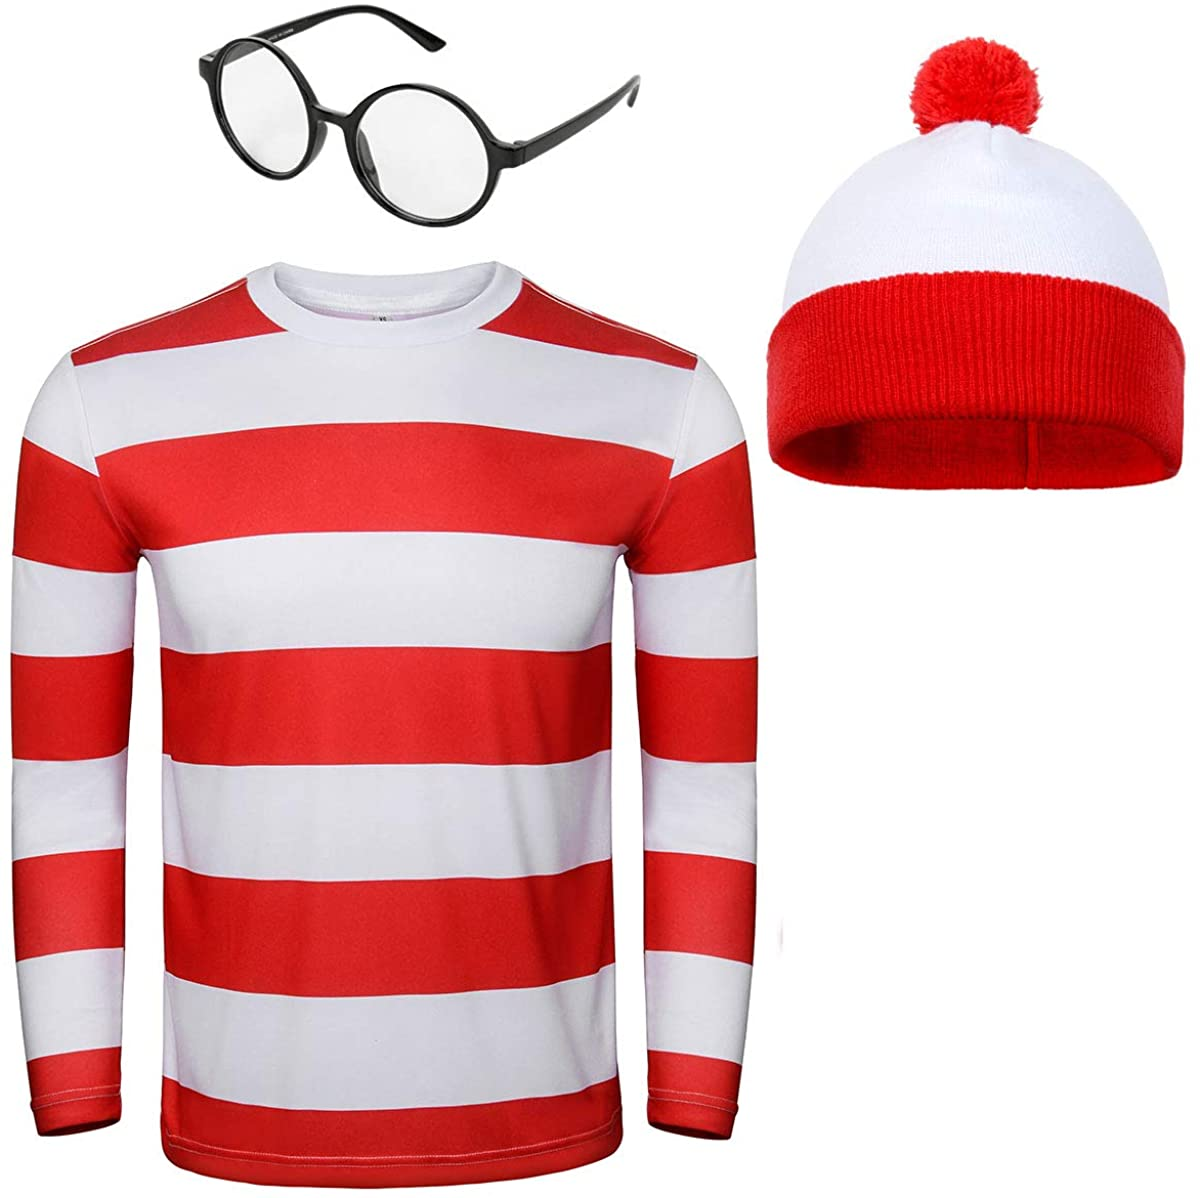 Waldo hat, striped shirt and glasses costume; work appropriate Halloween costumes